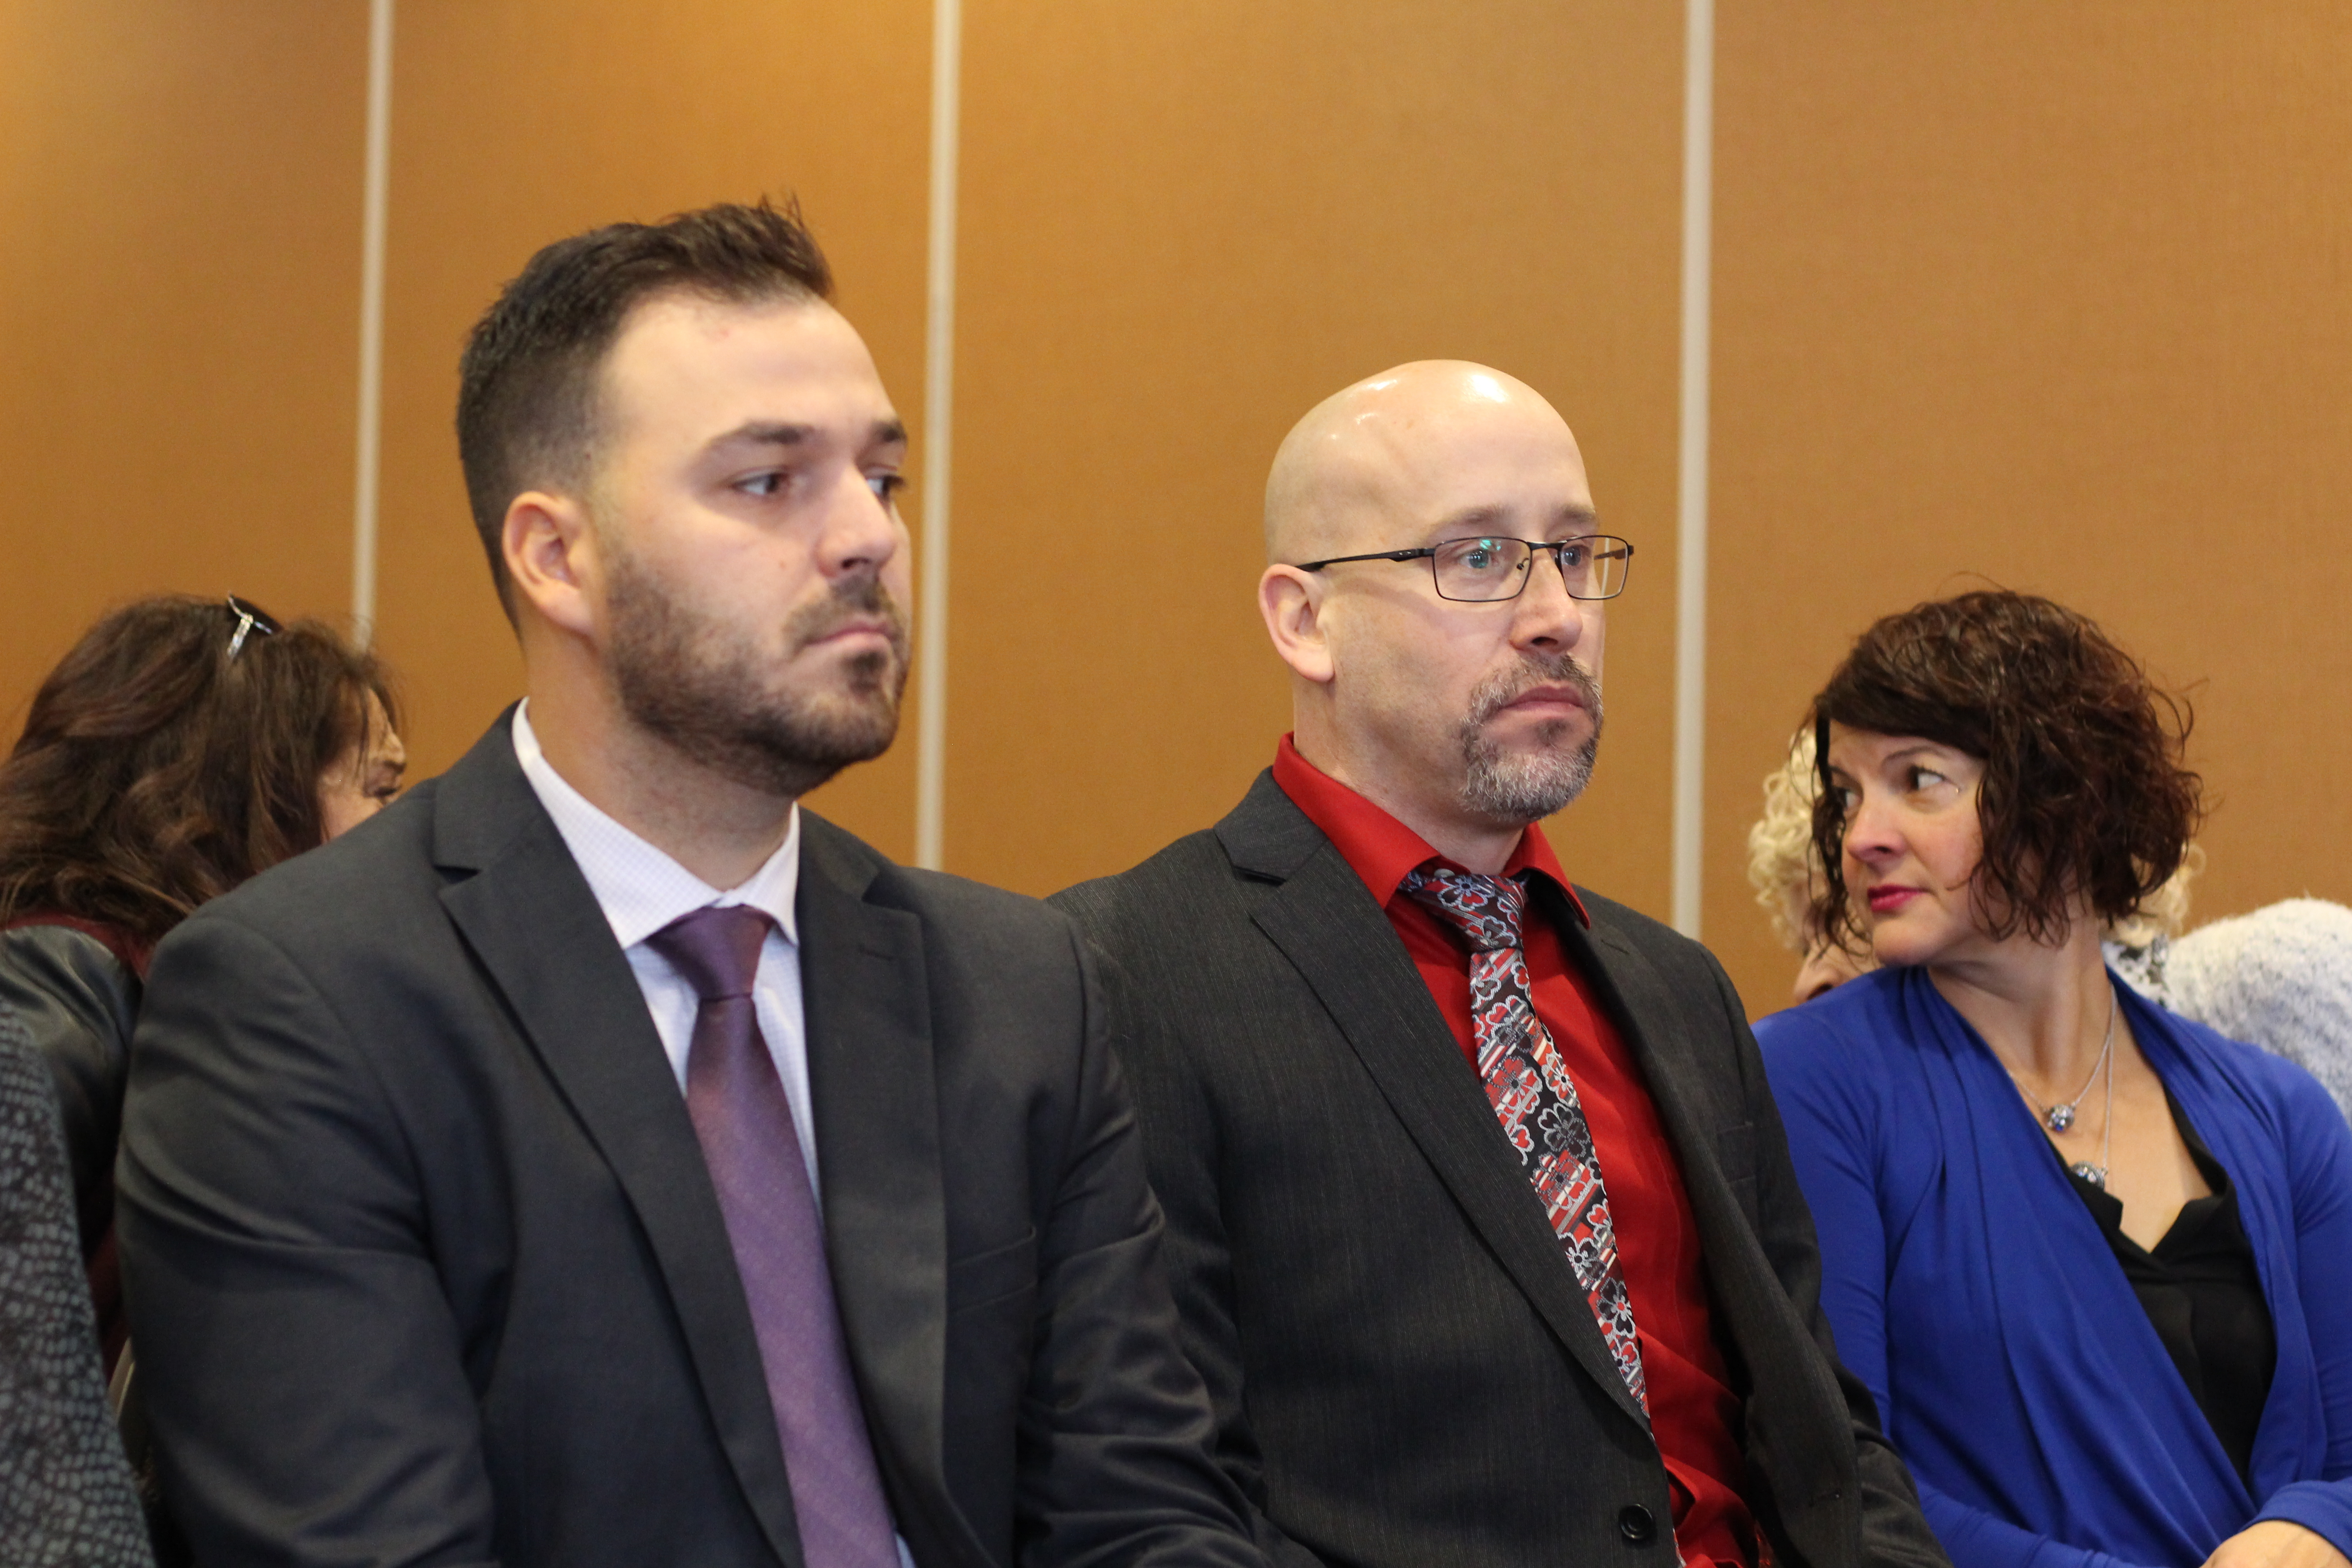 Bathurst Police Force constables Mathieu Boudreau, left, and Patrick Bulger were the newest members of the integrated intelligence unit. (Shane Magee/CBC)